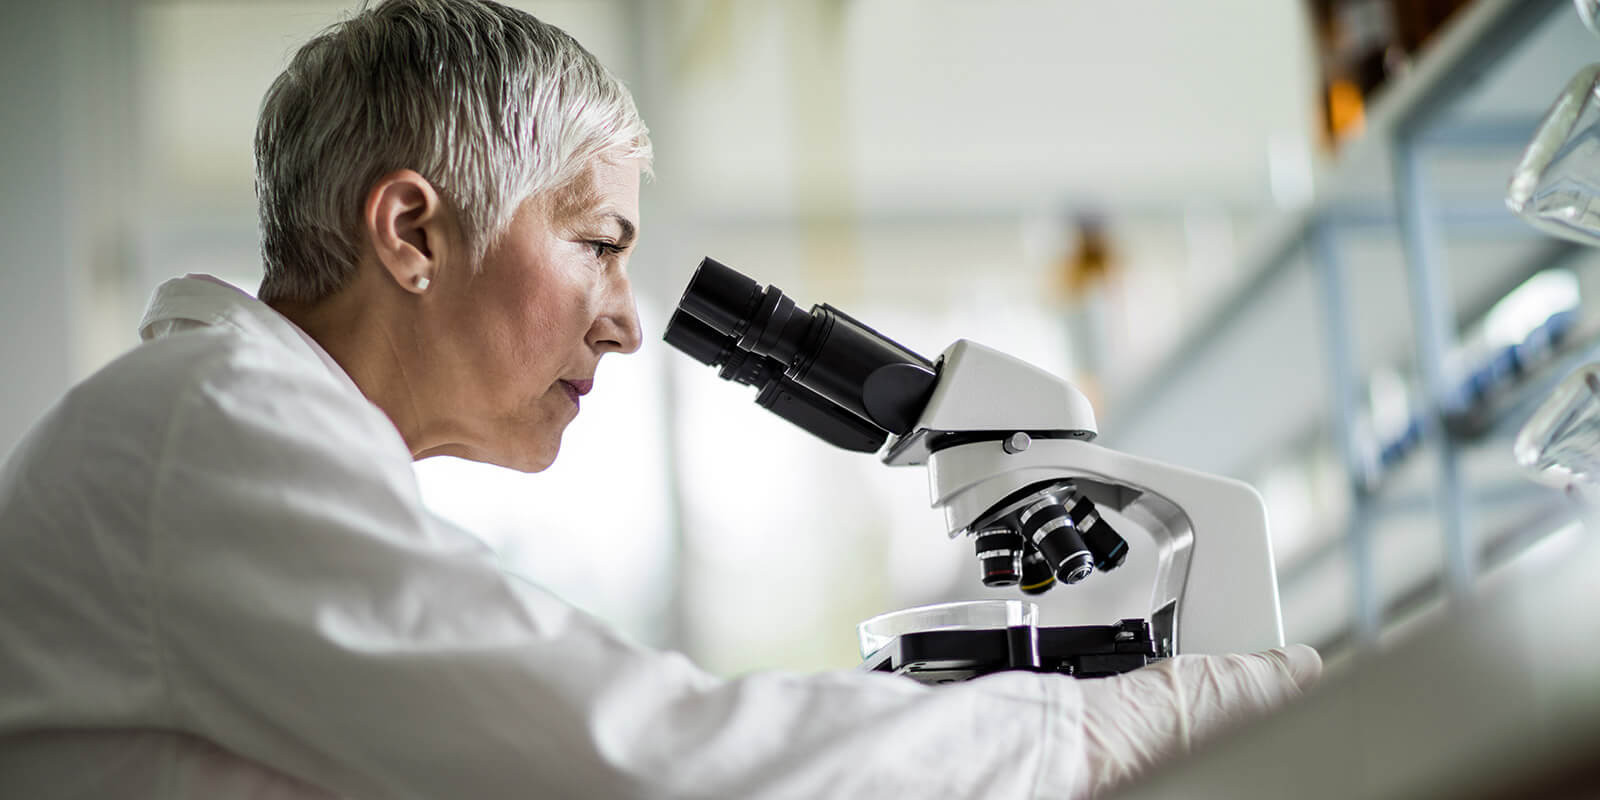 Abscopal Responses Achieved in Prostate Cancer